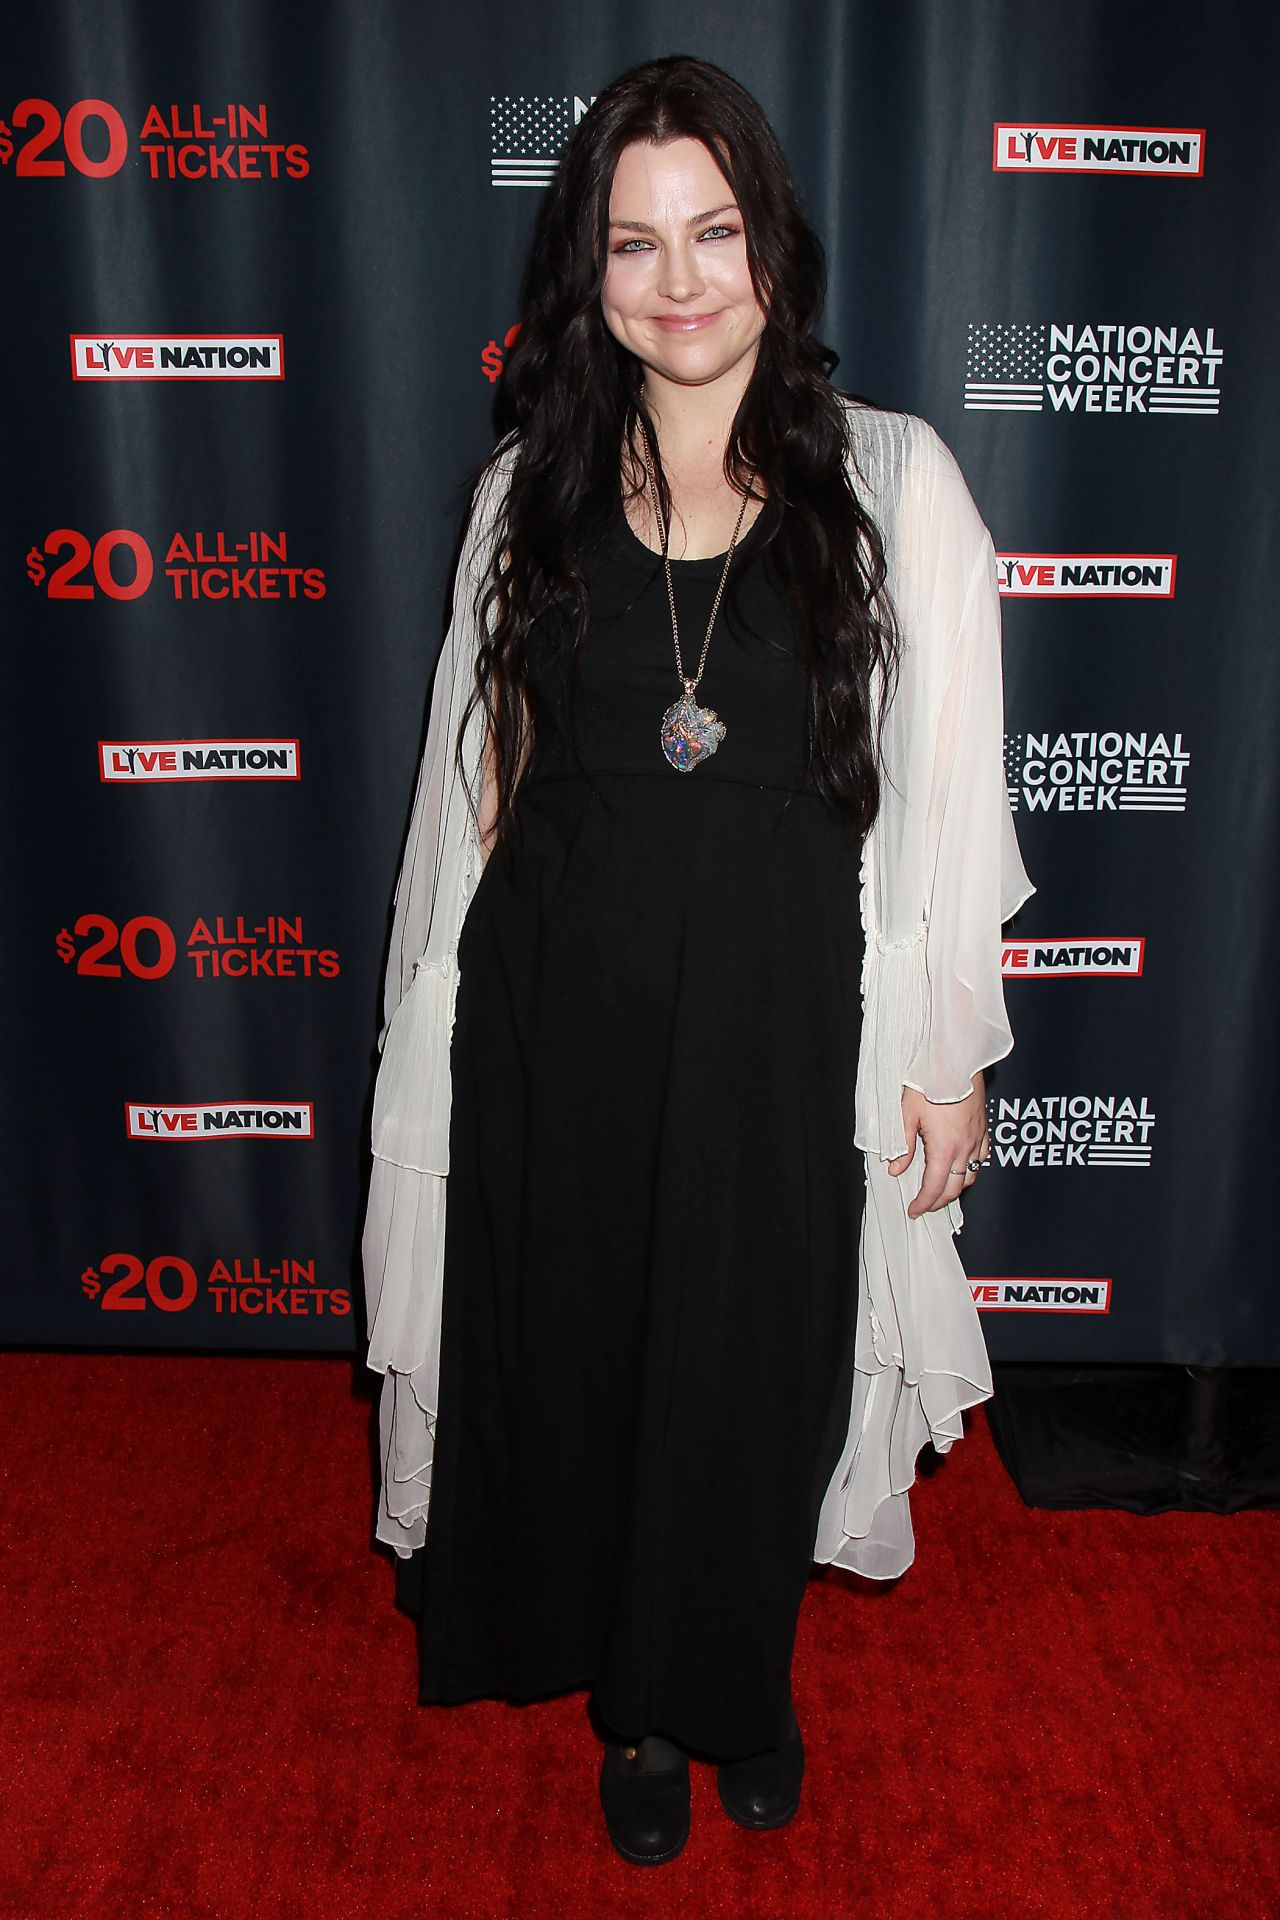 http://celebmafia.com/wp-content/uploads/2018/05/amy-lee-live-nation-launches-national-concert-week-in-ny-04-30-2018-1.jpg